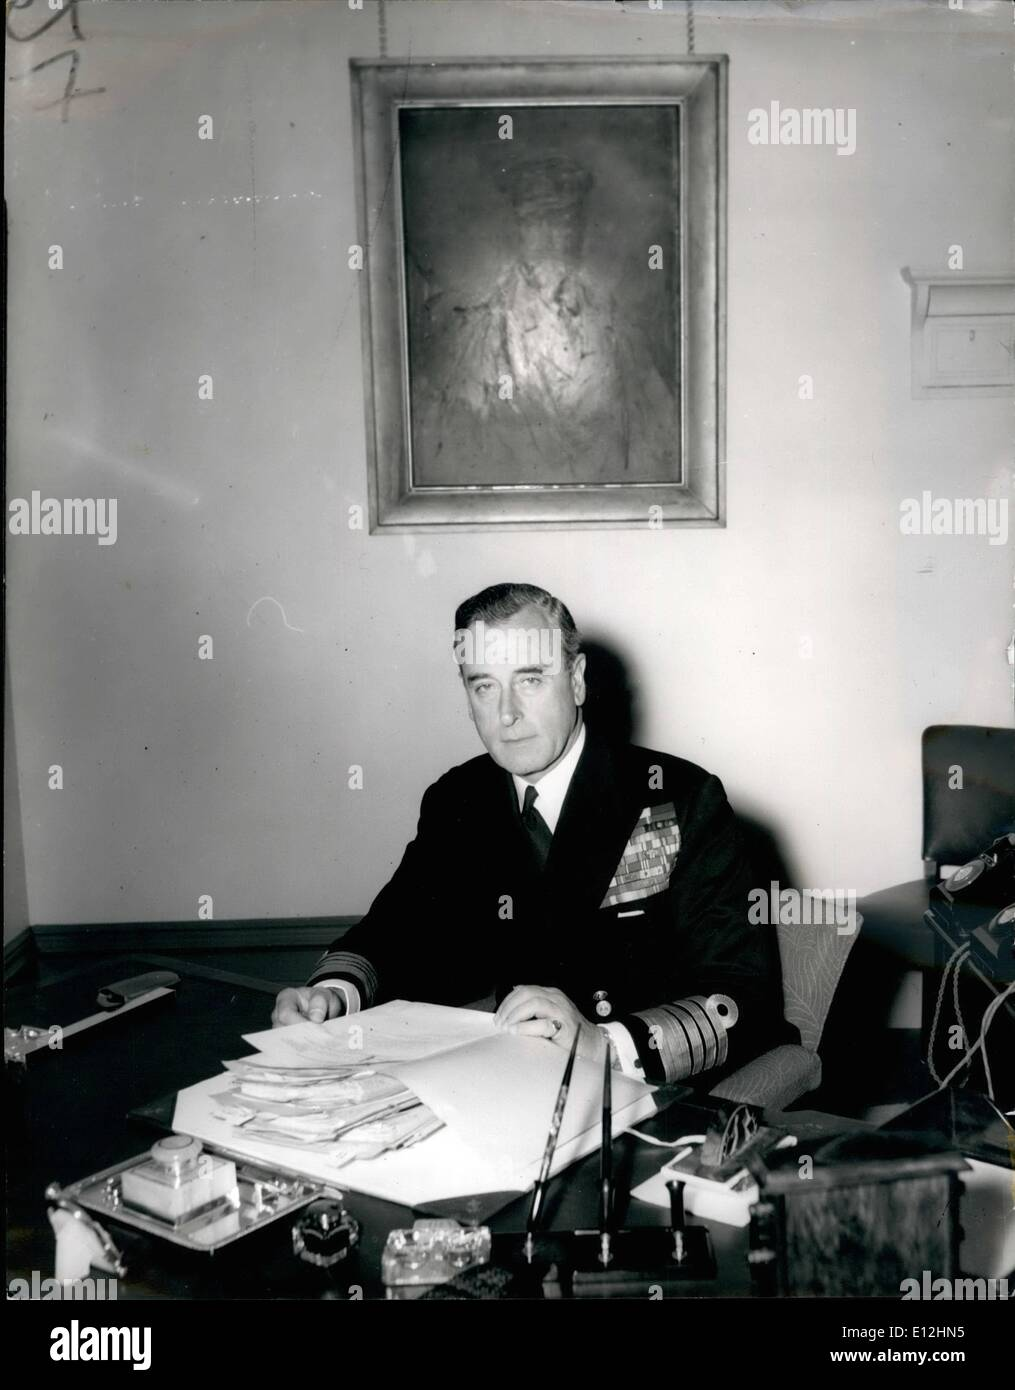 Jan. 04, 2012 - PHOTO SHOWS ADMIRAL EARL MOUNTBATTEN of Burma, pictured at his desk in his room at the Admiralty this morning. The painting in the background is of his father, Prince Louis of Battenburg, who was First Sea Lord immediately before and up to the outbreak of the 1914-18 war. - Stock Image